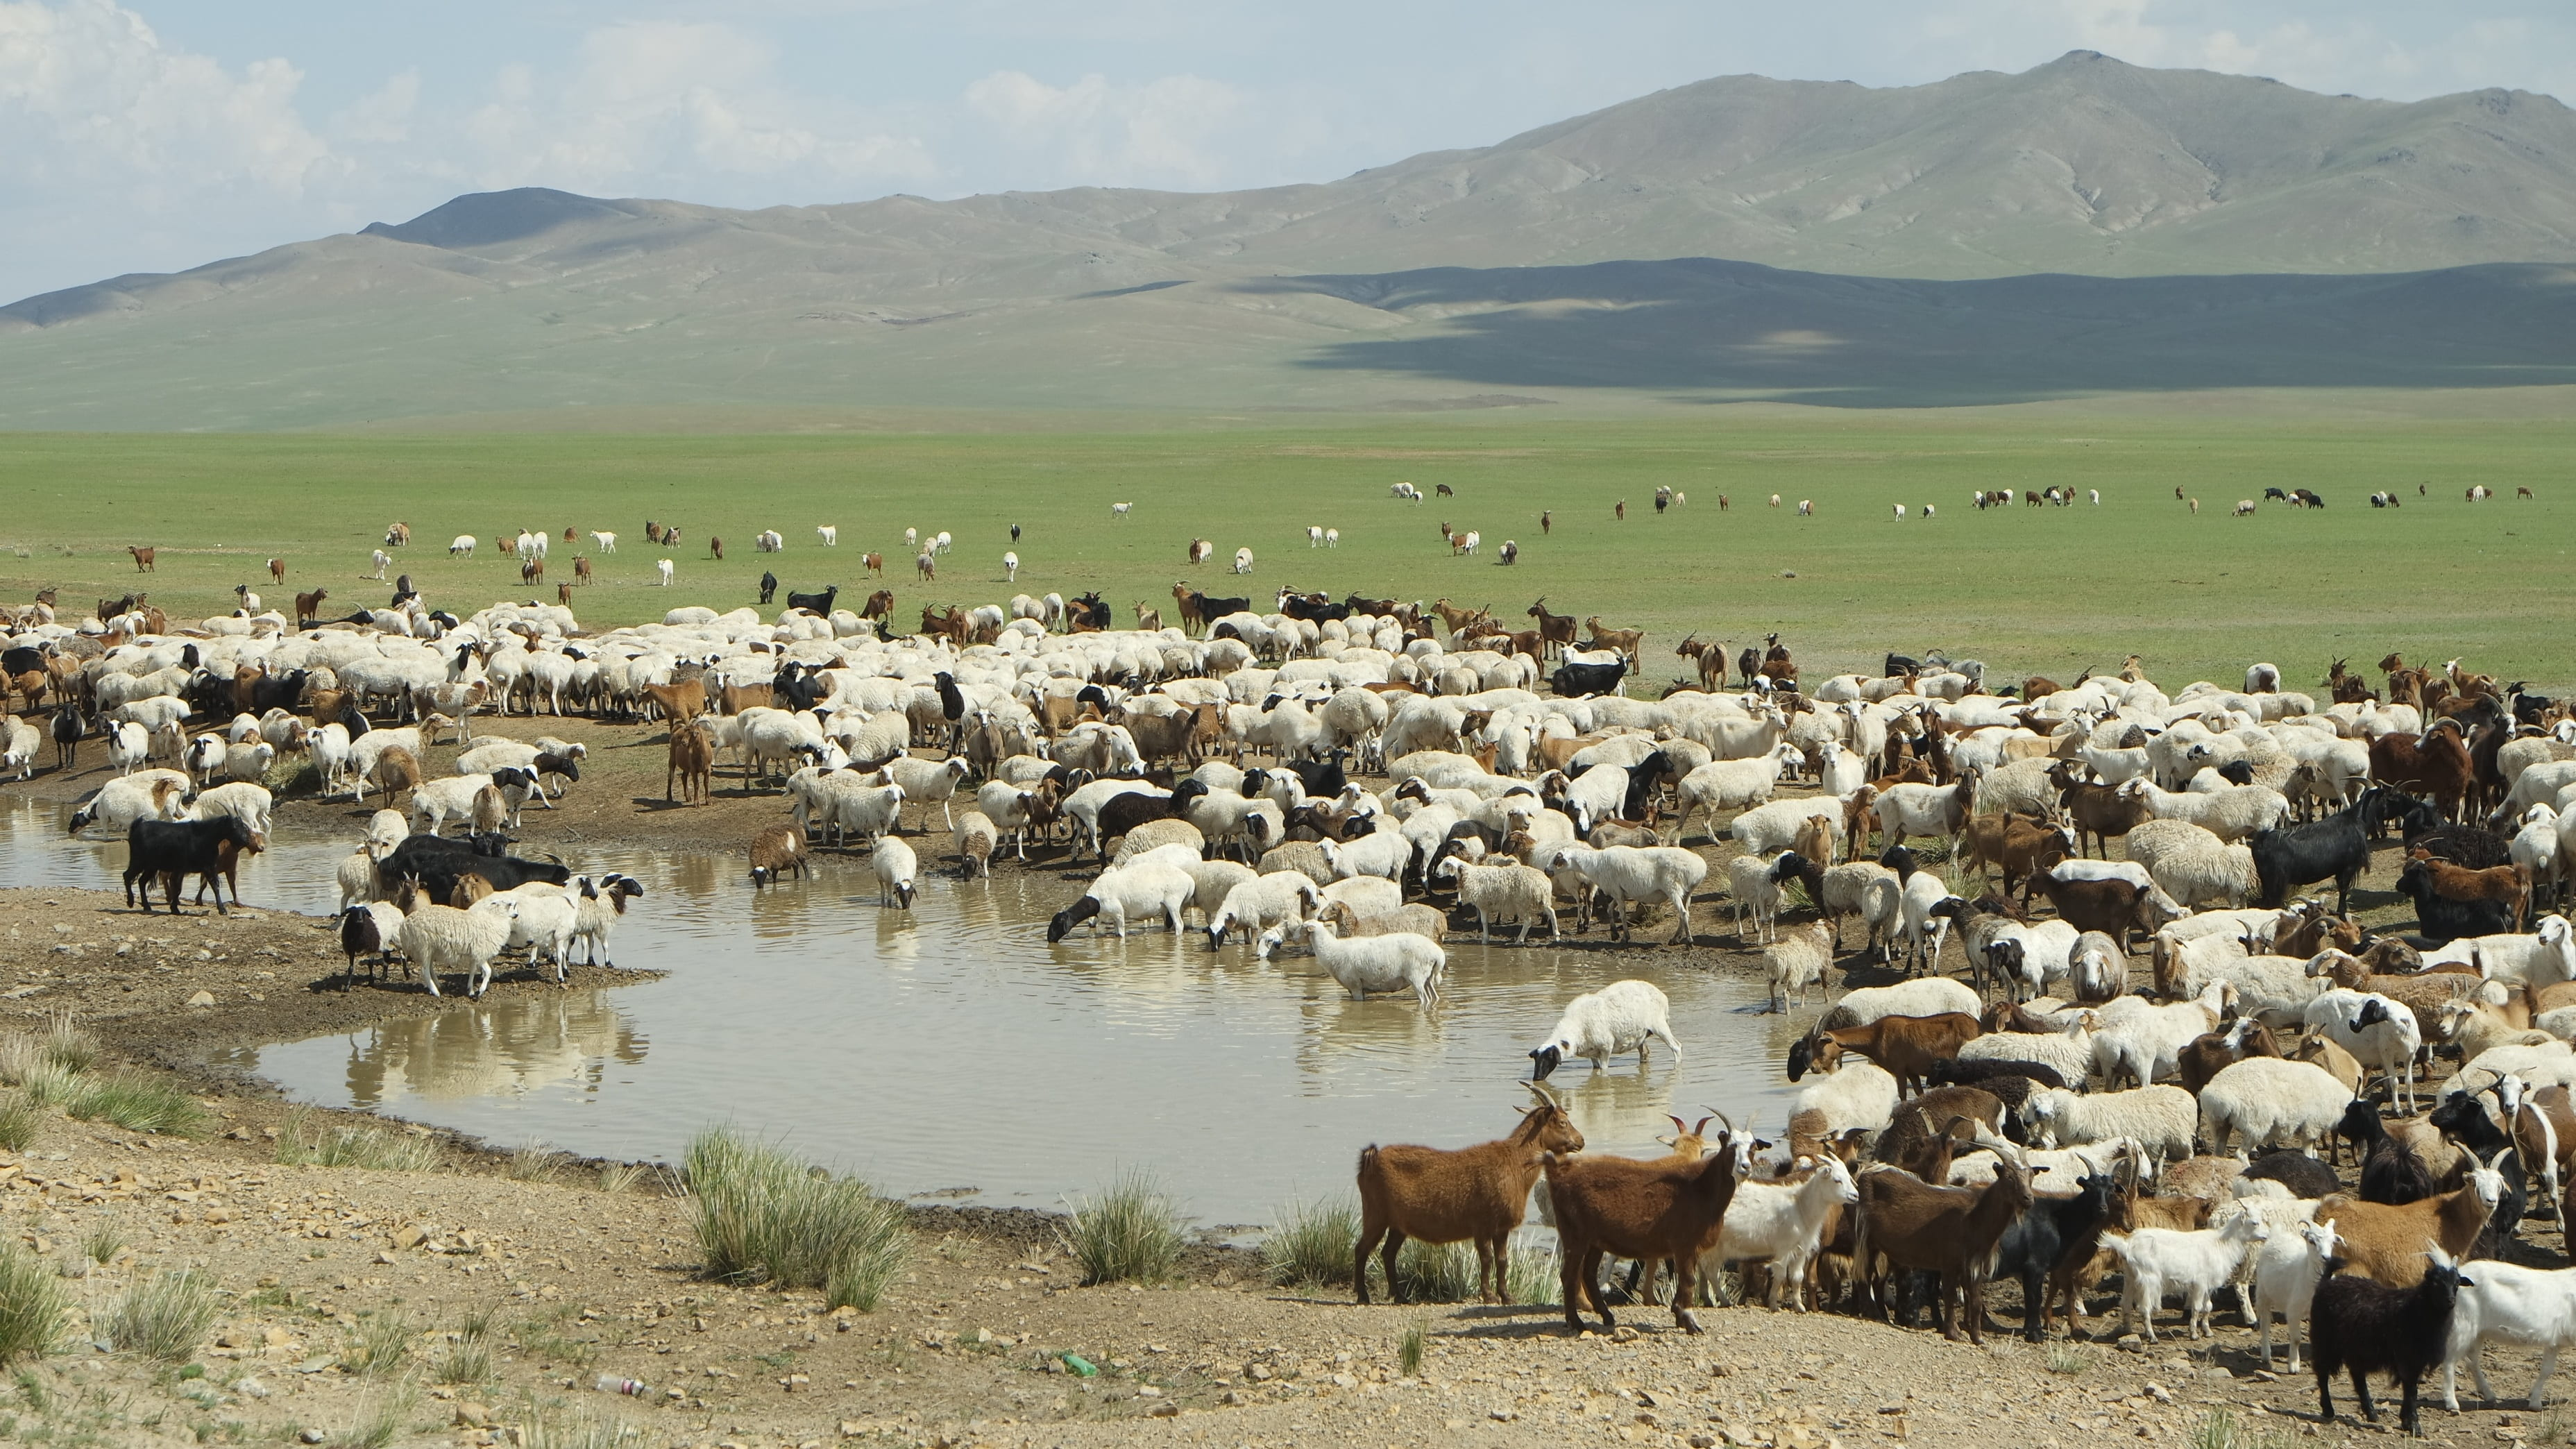 13-Day Mongolia Tour: A Land of Mystic Serene Steppes